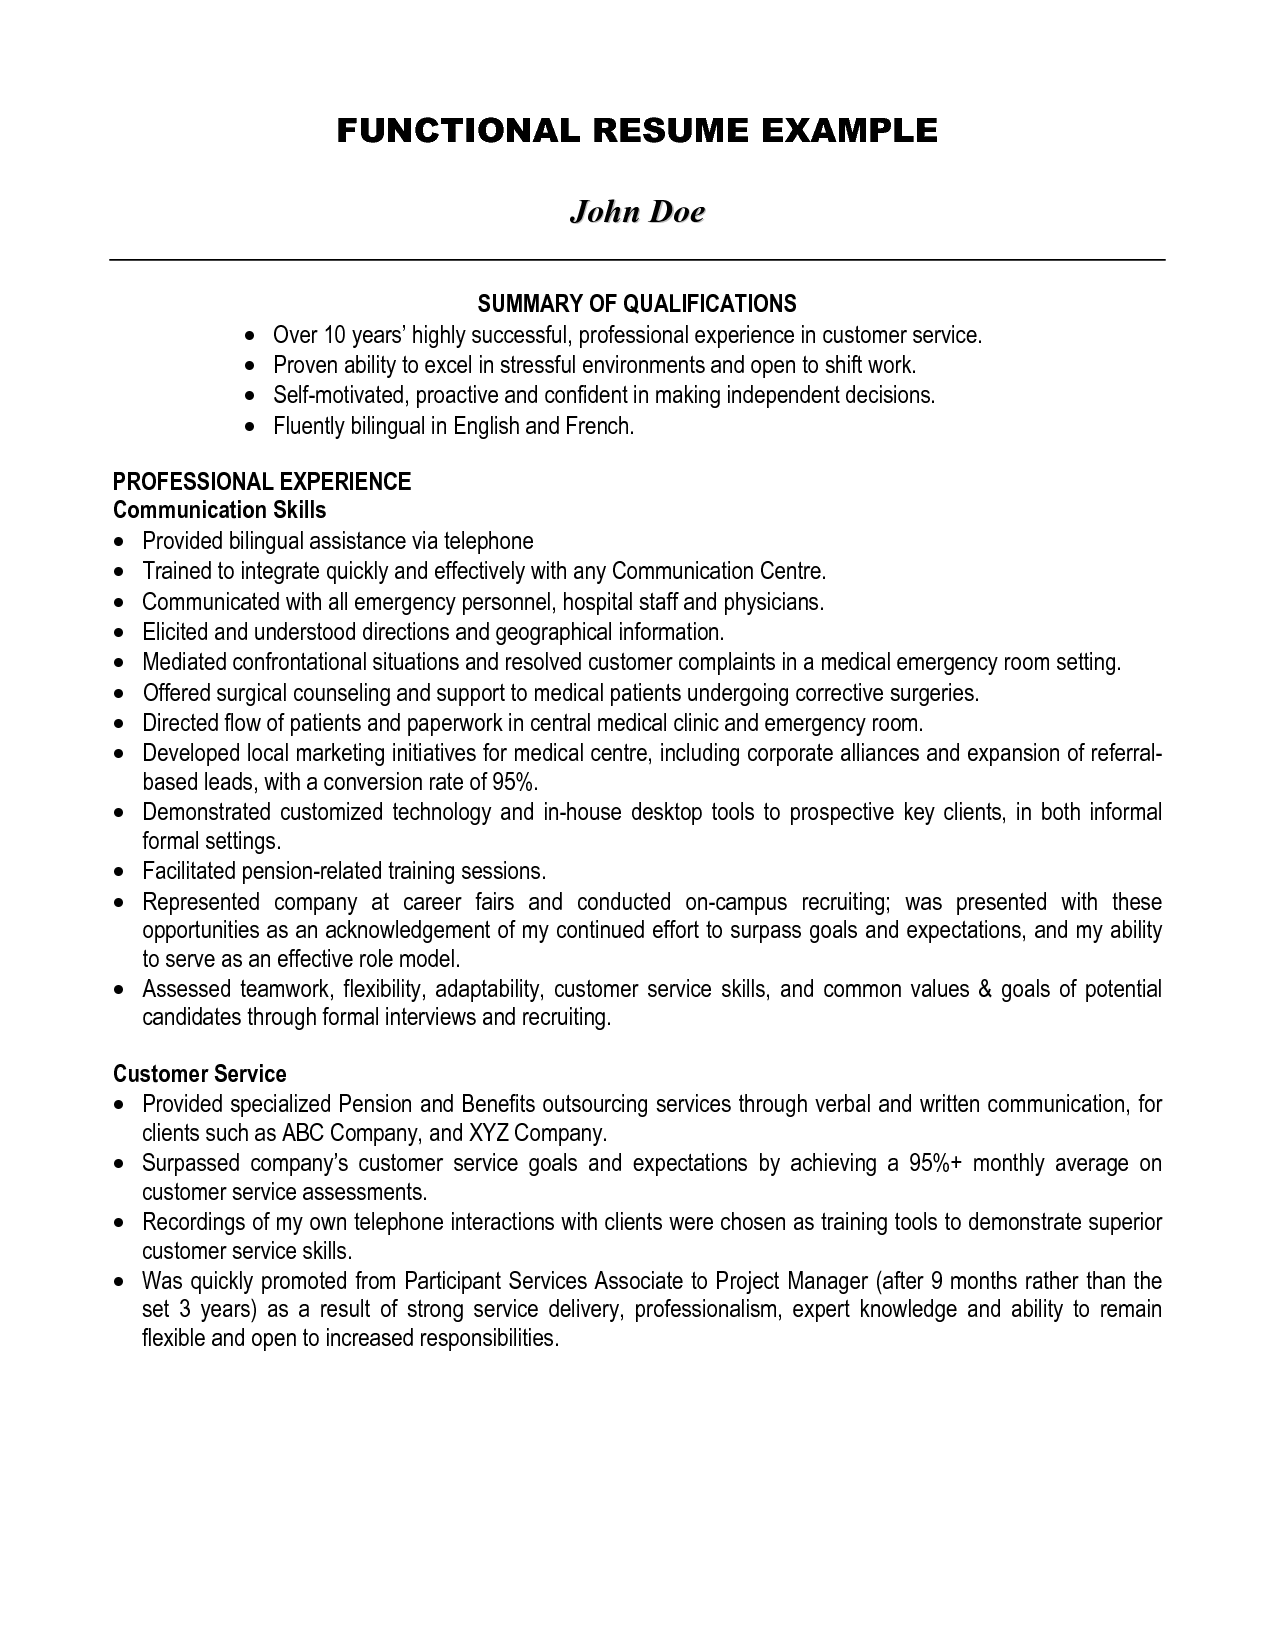 23 Staff Accountant Resume Examples in 2020 Resume